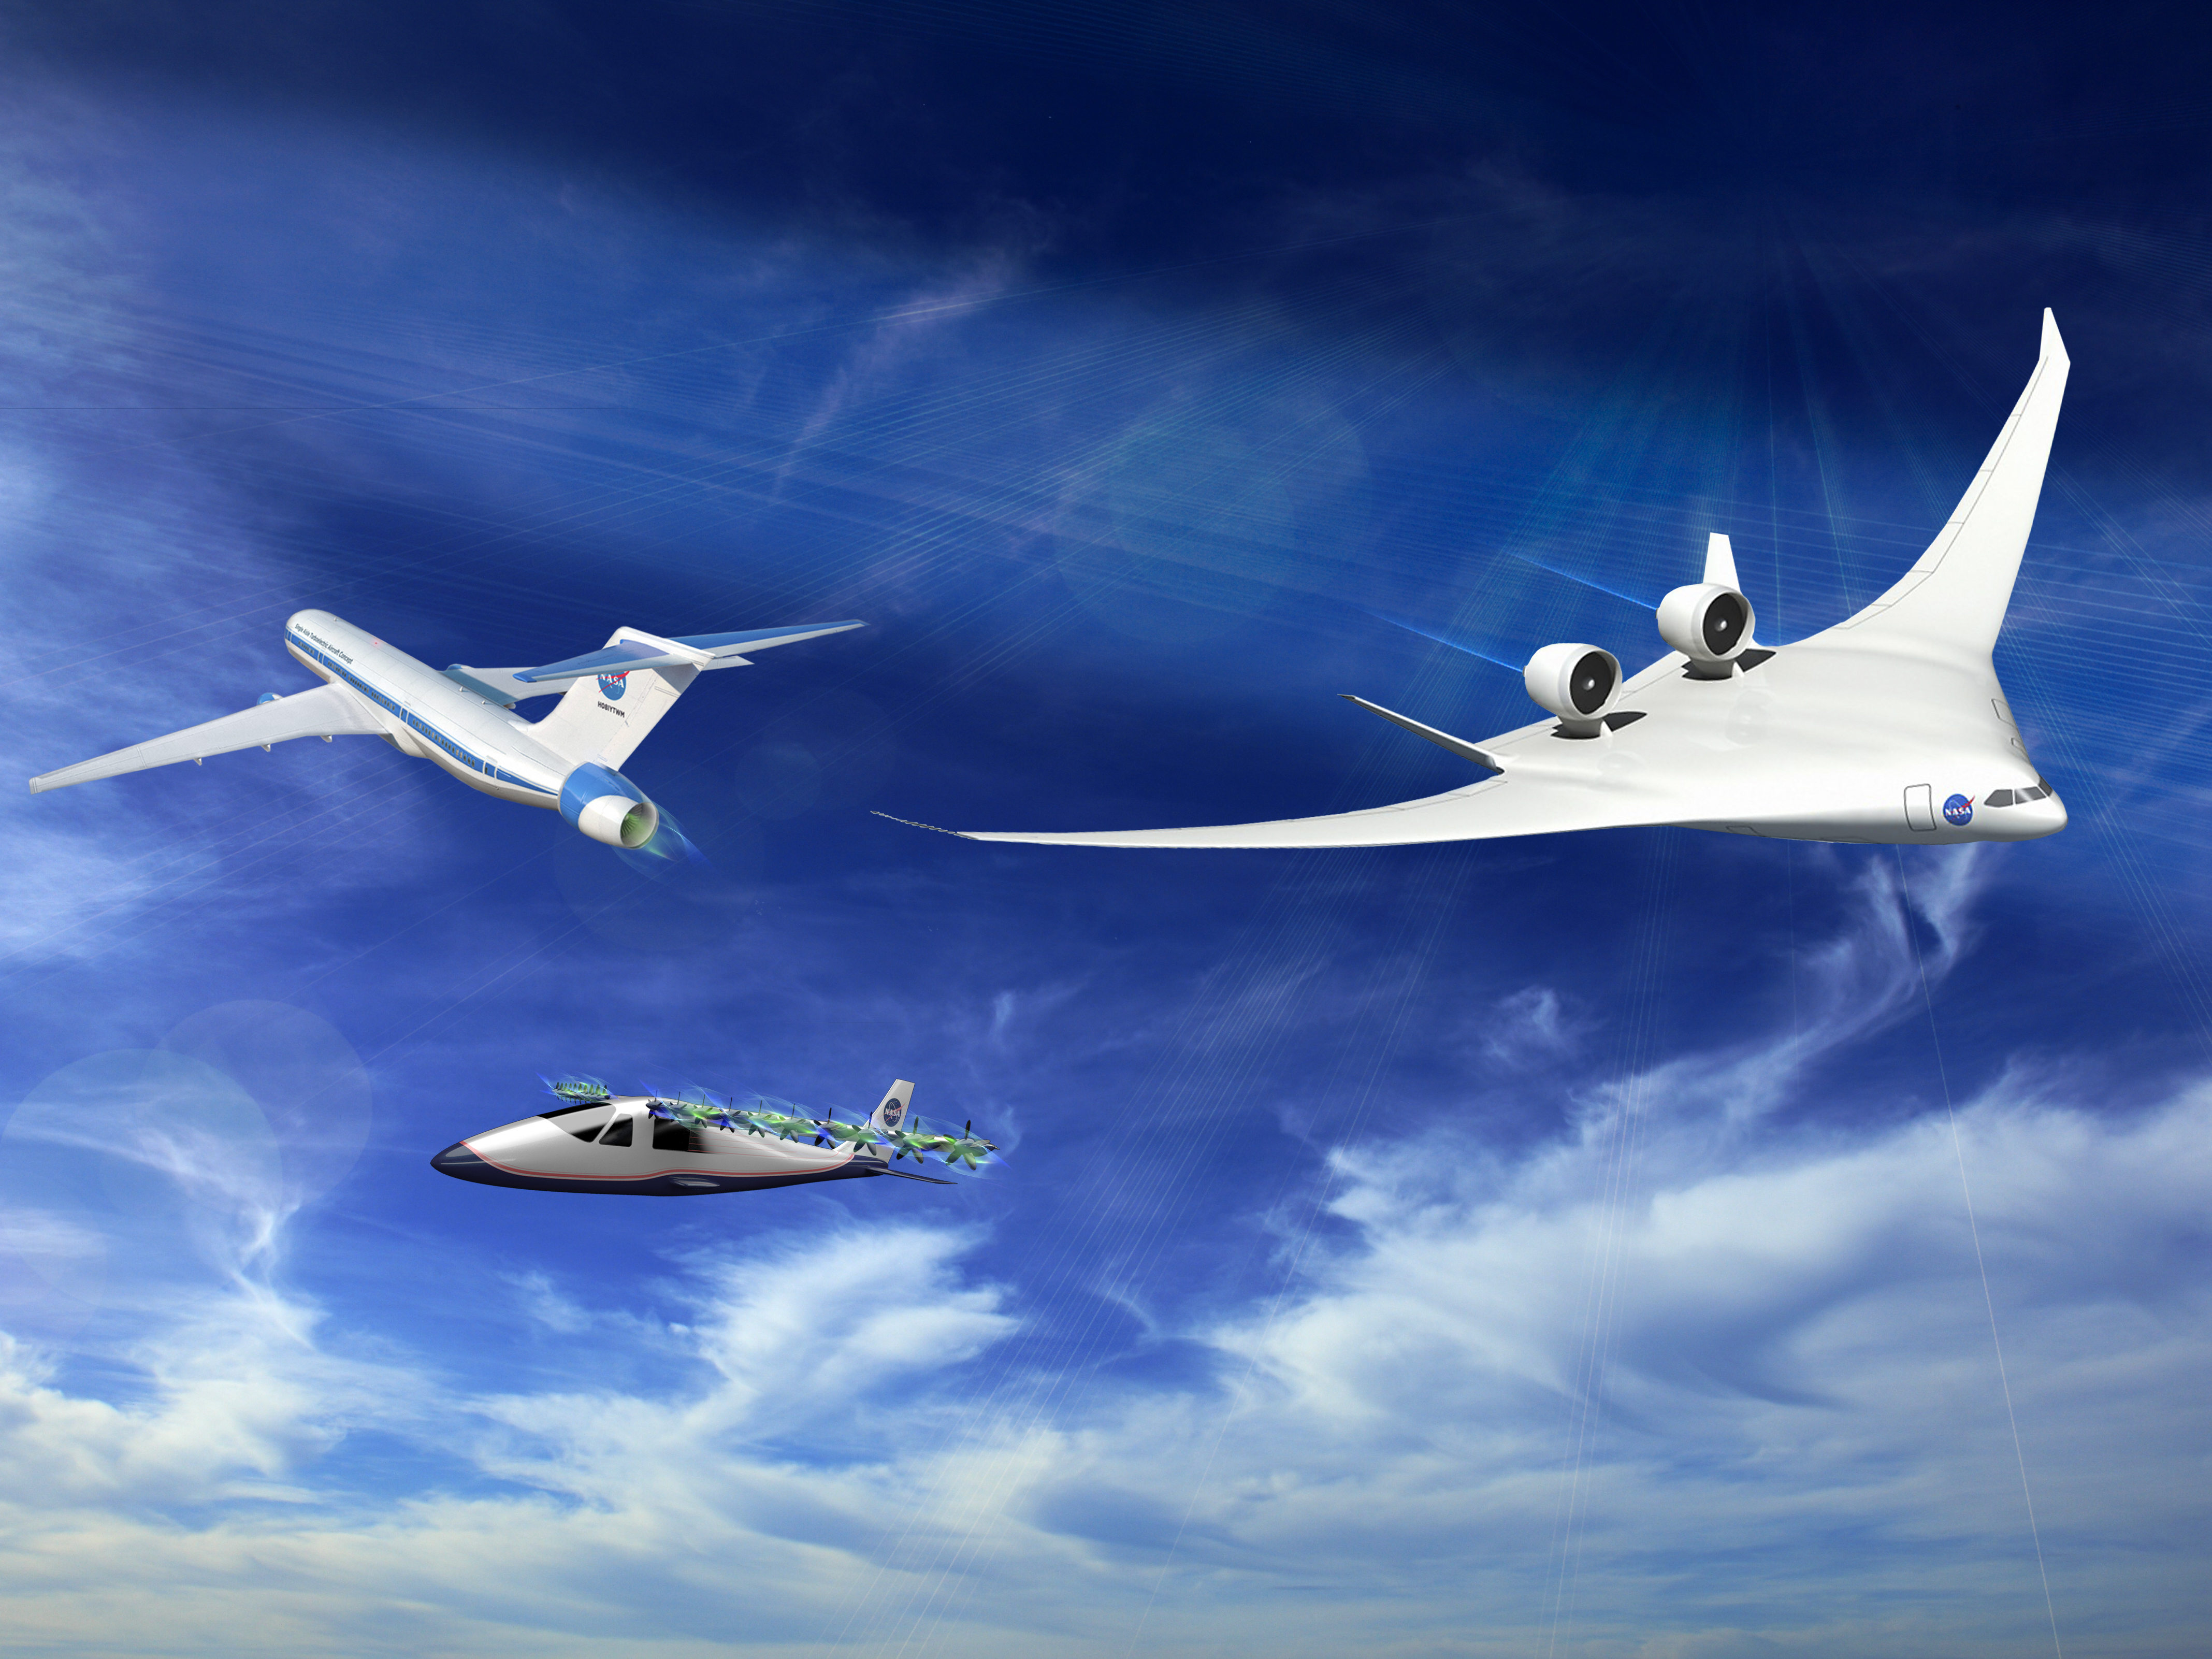 With the recent advances in technology and design aircraft concepts - Artist Concept Of Subsonic Vehicles In Fight